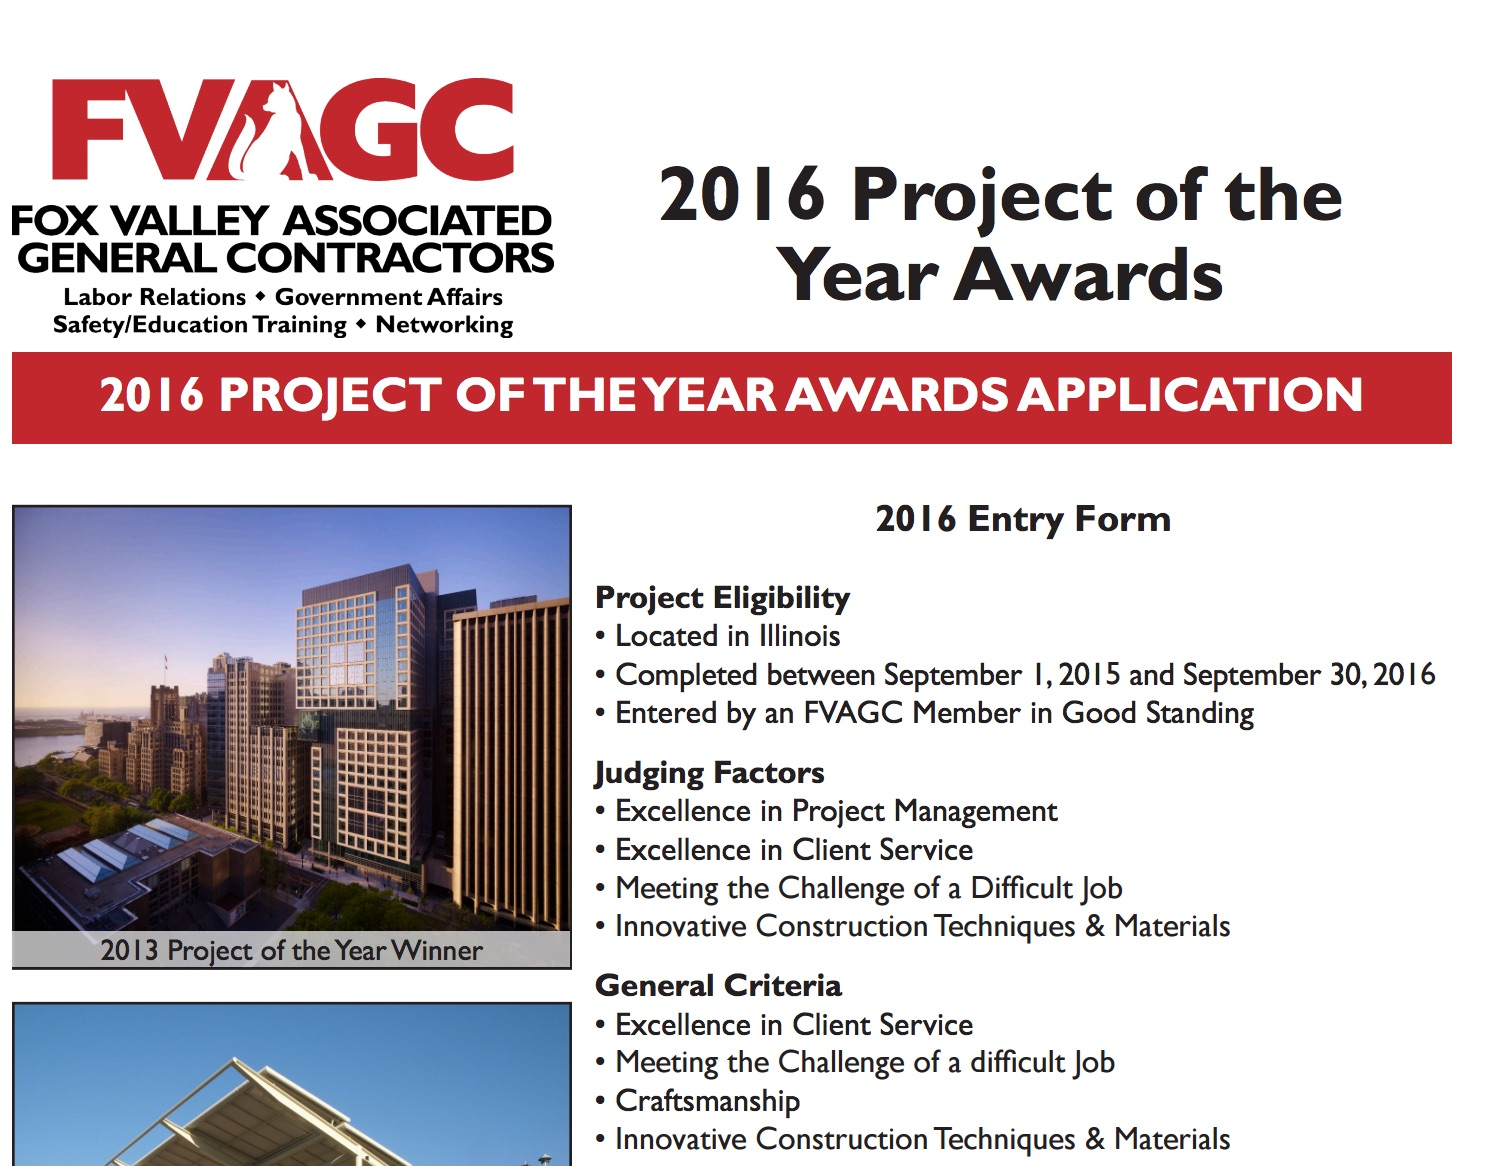 fvagc project of year